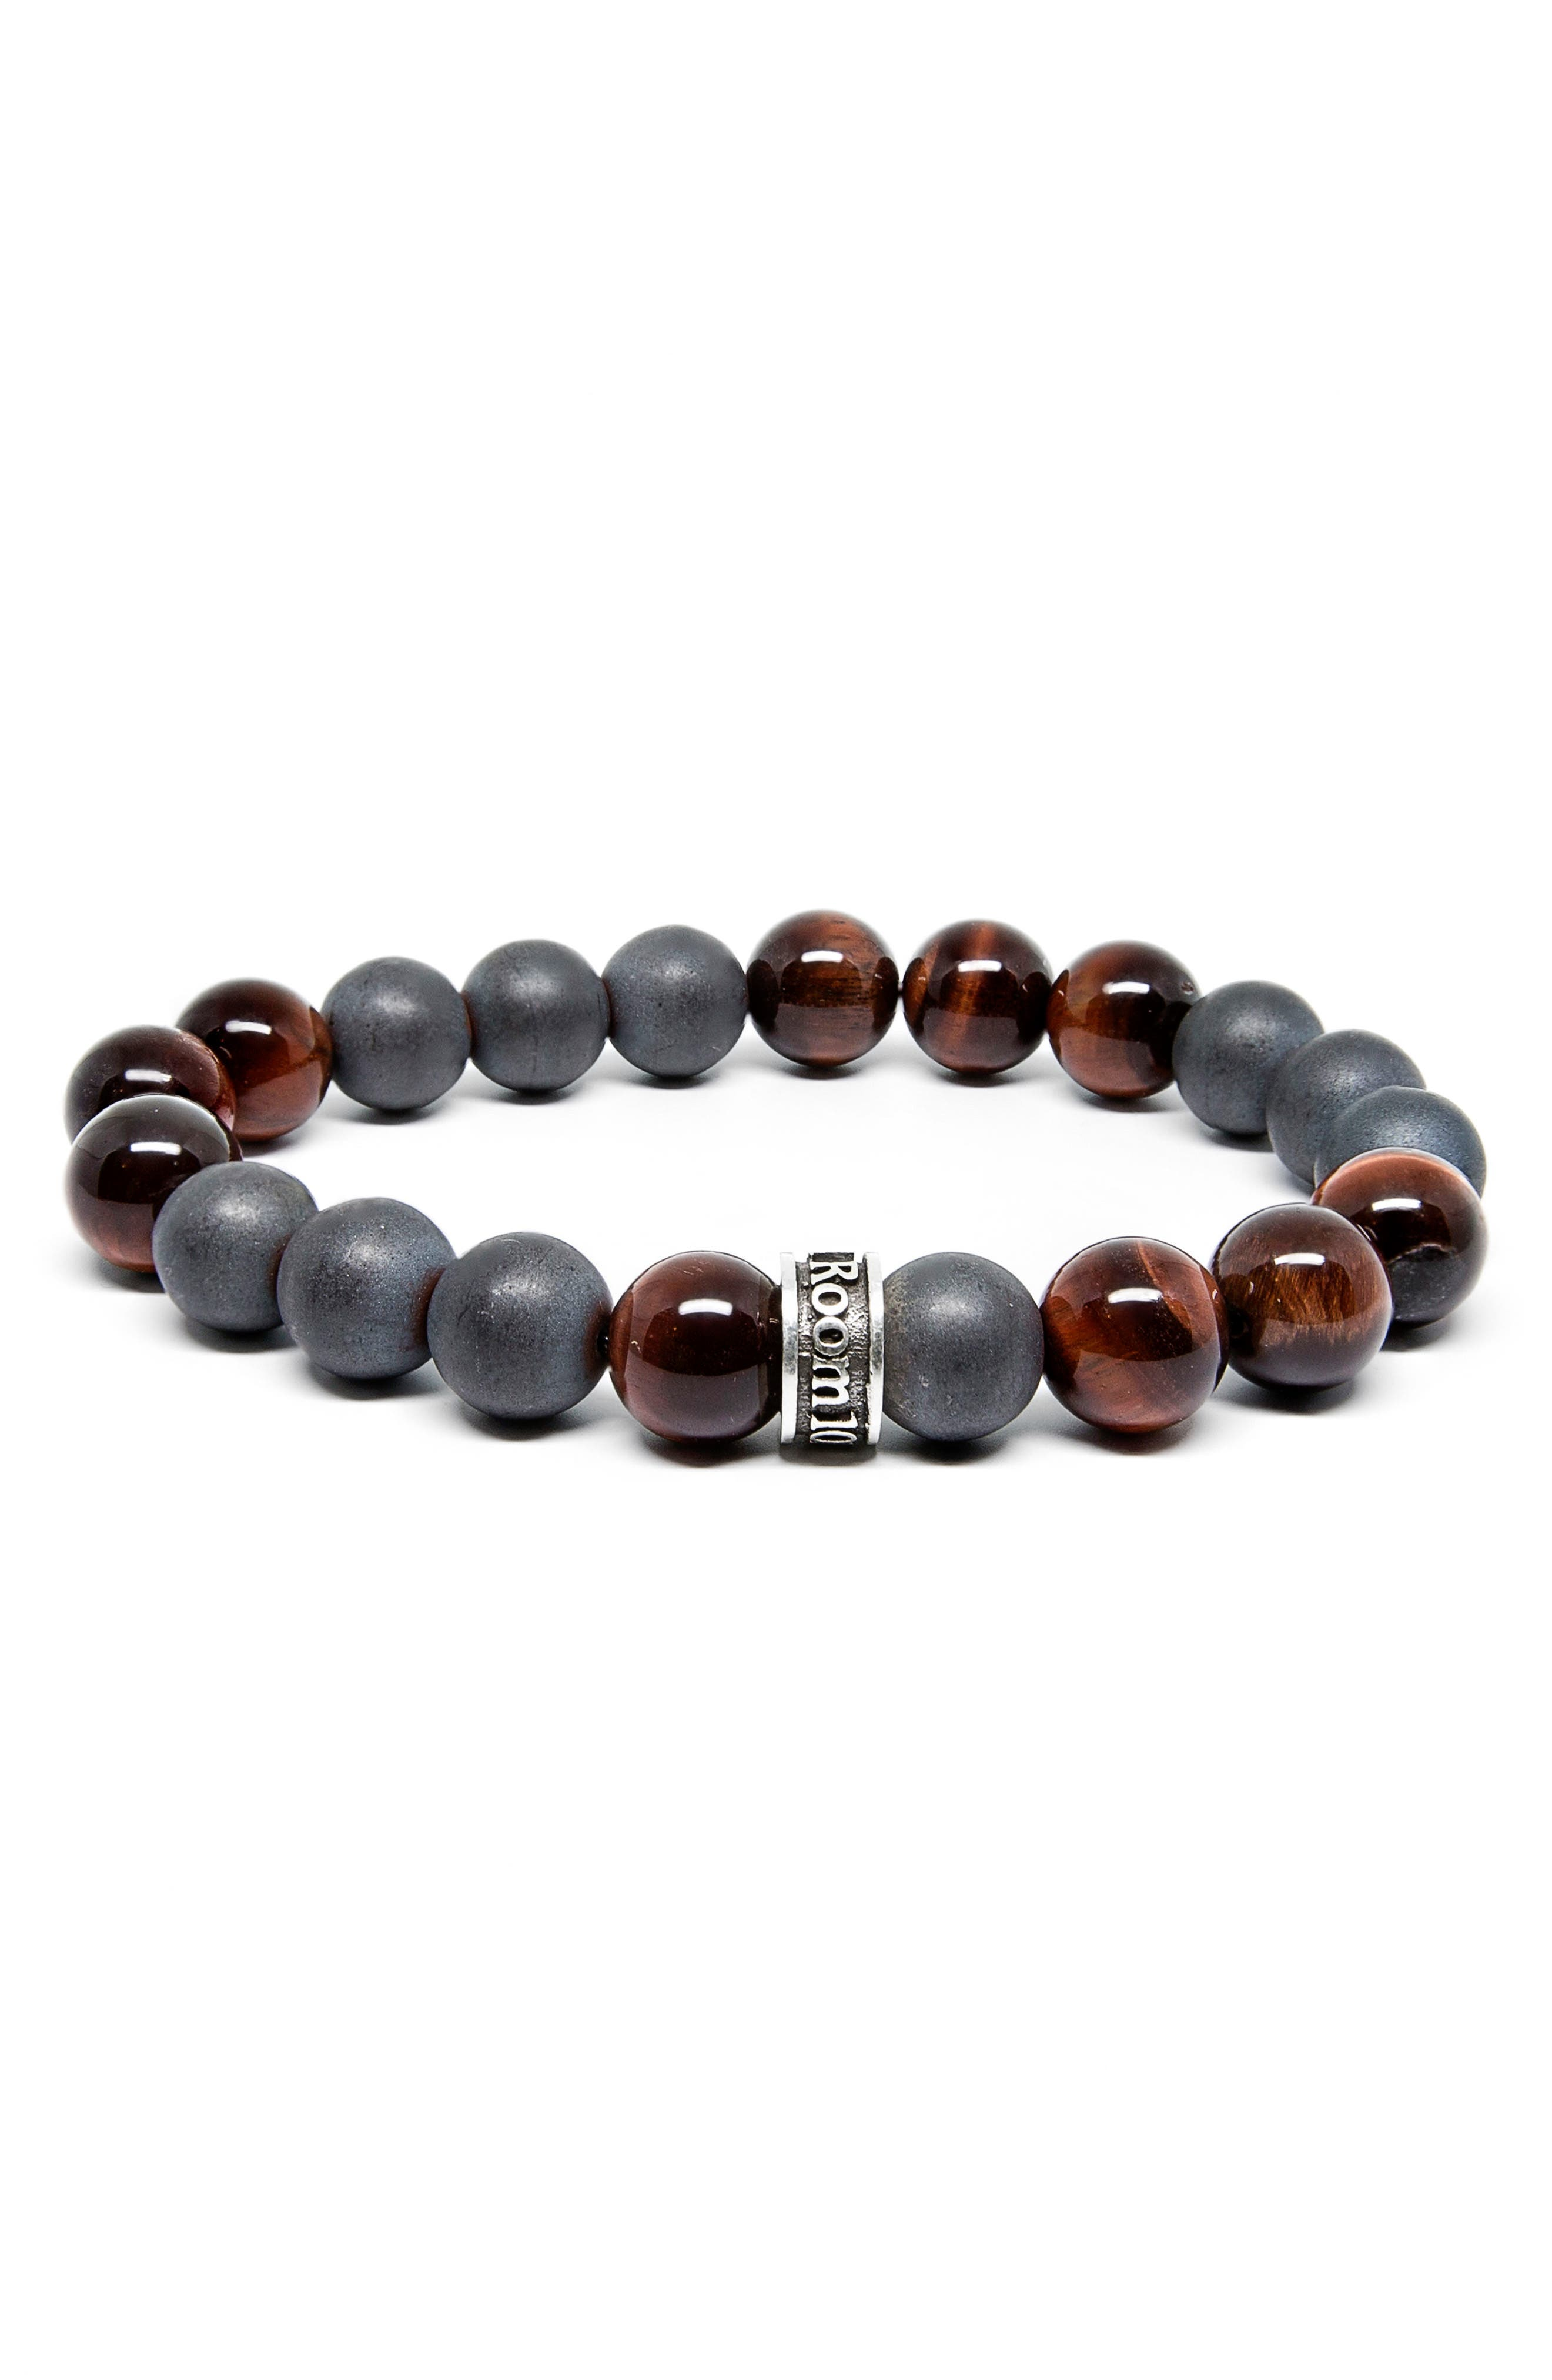 Hematite Red Tiger's Eye Stretch Bracelet,                         Main,                         color, Silver/ Red